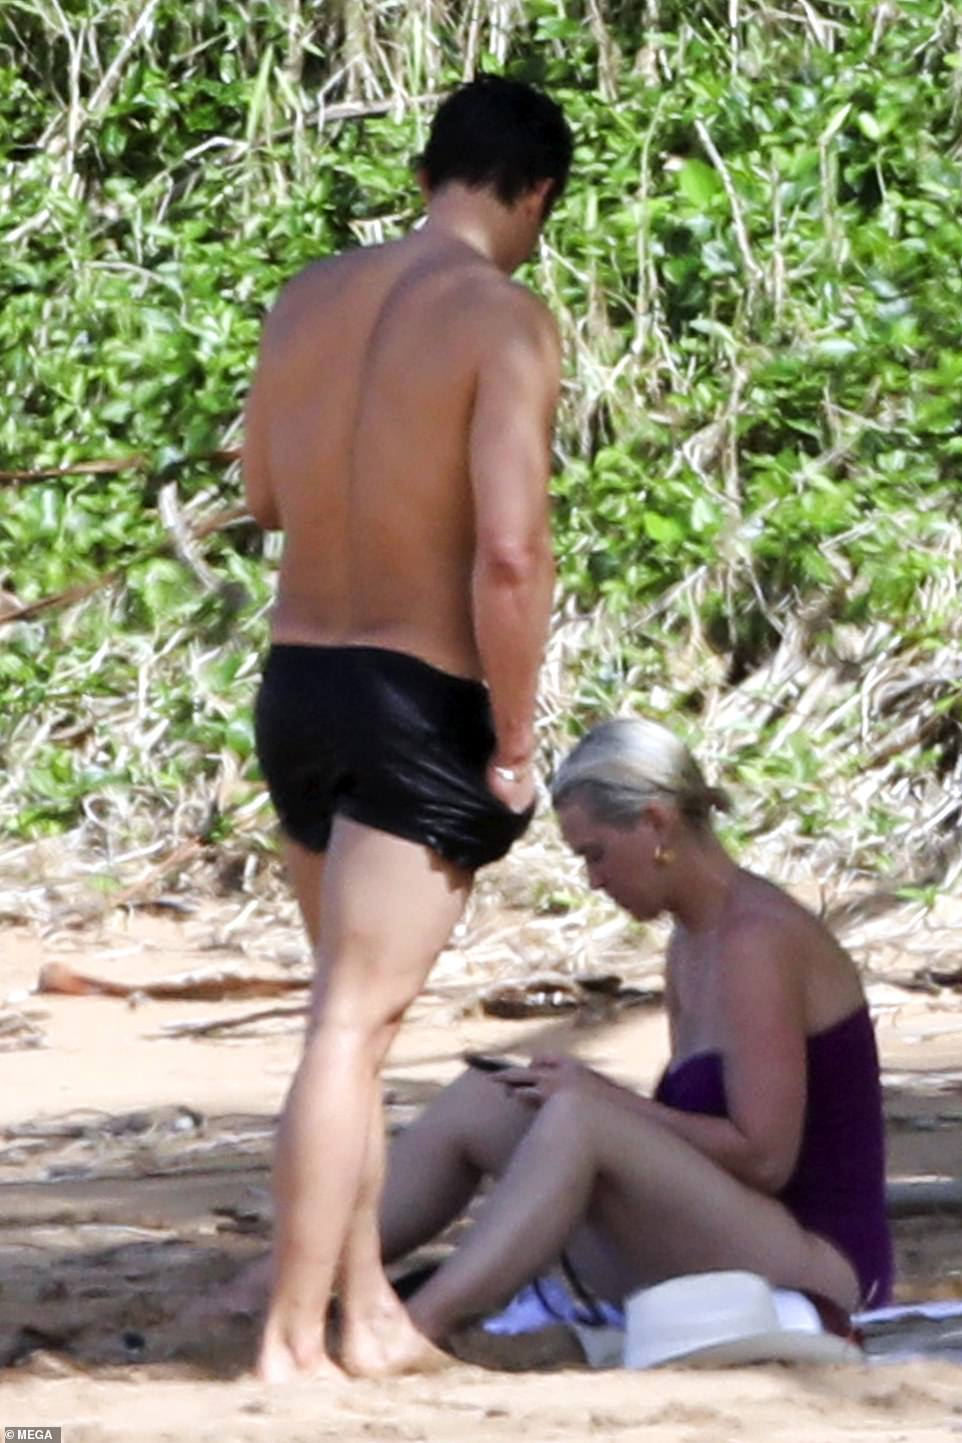 Leggy: The British hunk's swimming shorts left very little to the imagination